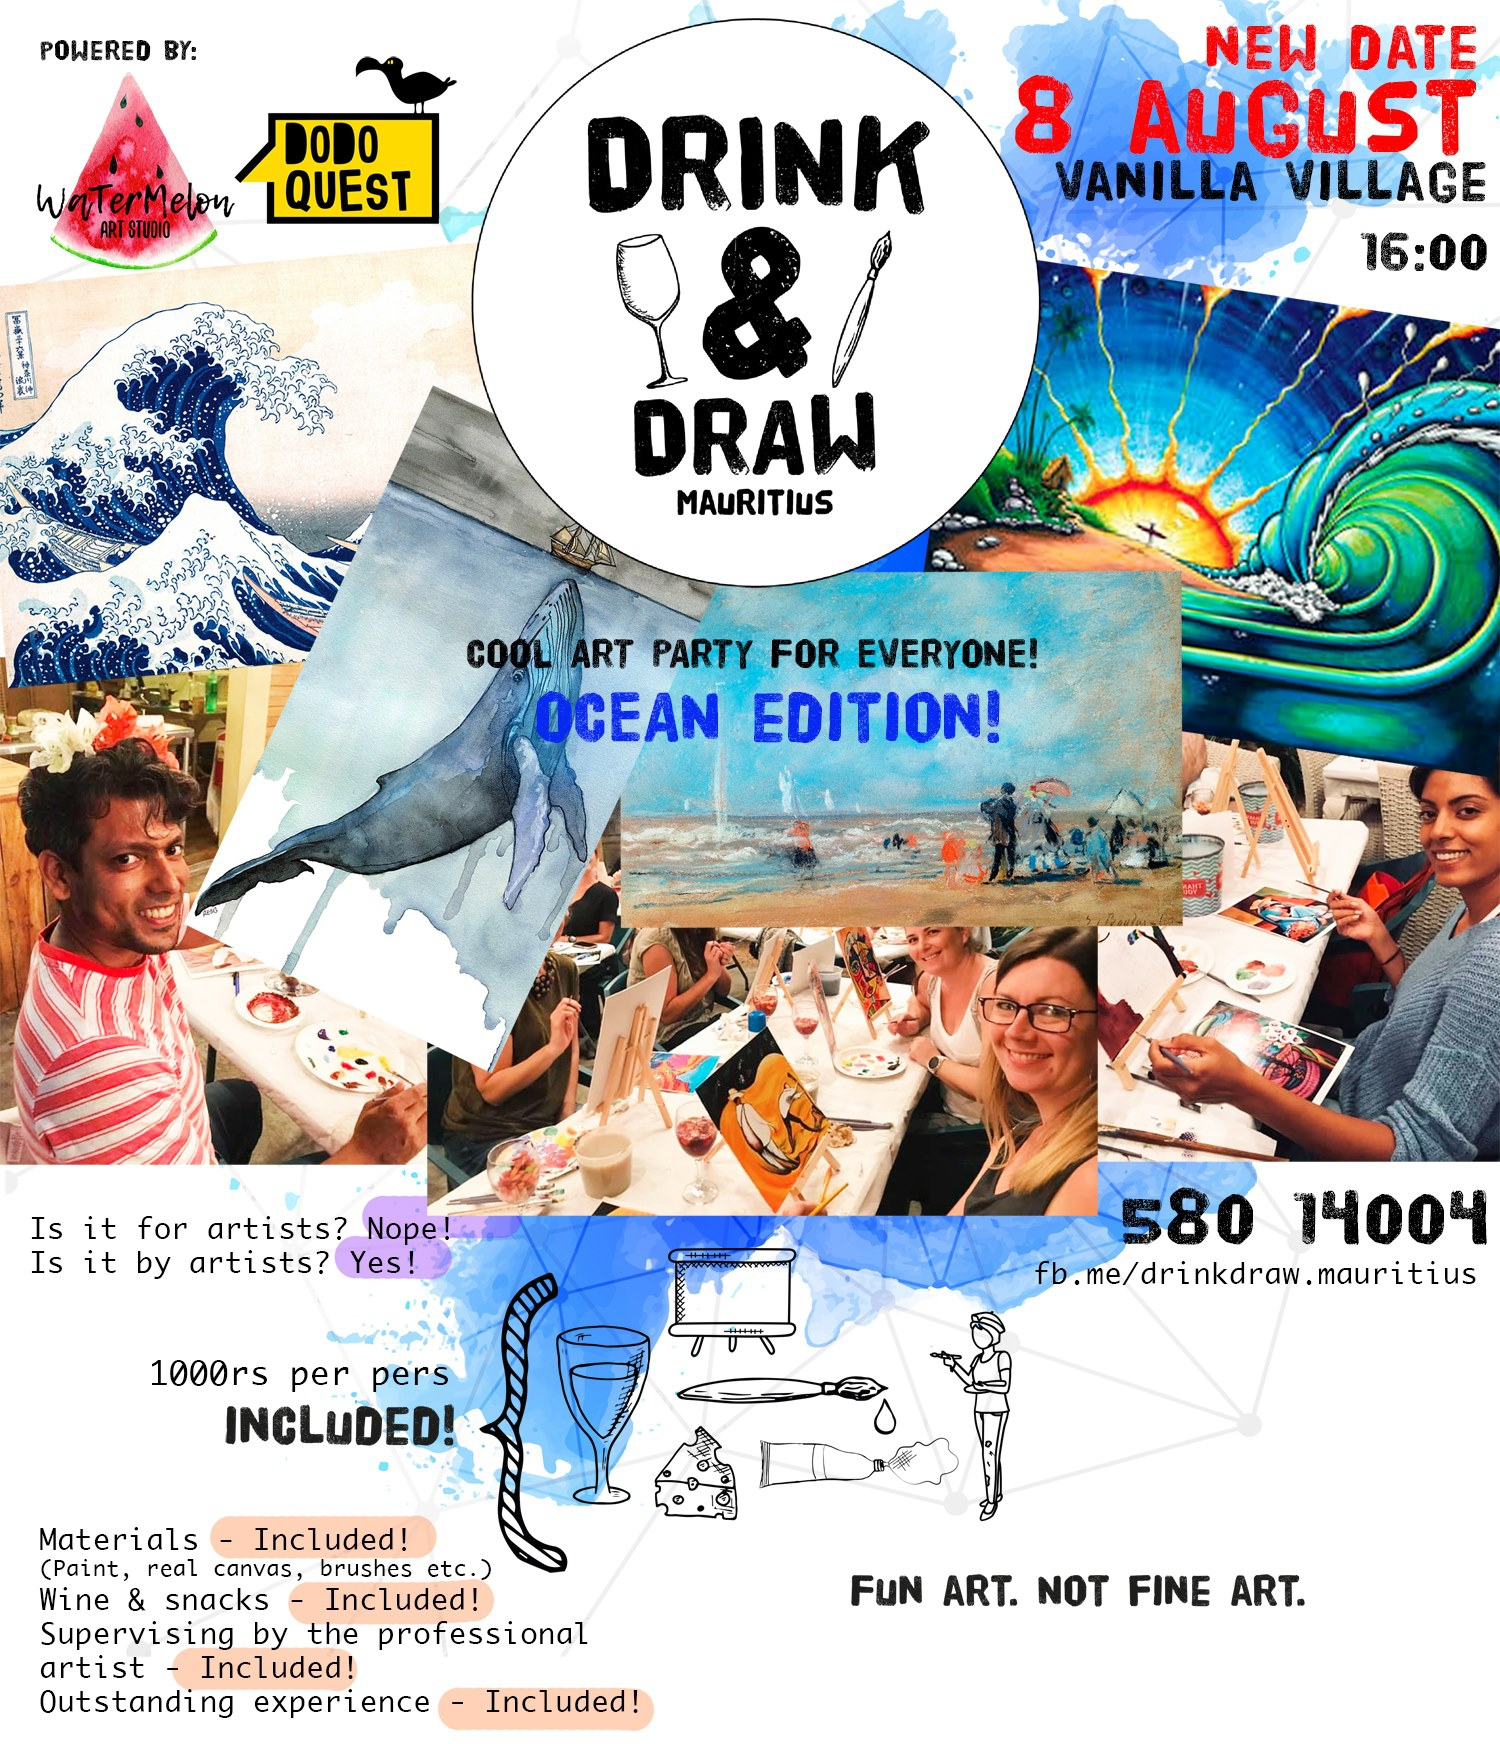 Drink&Draw party (Ocean edition) New DATE